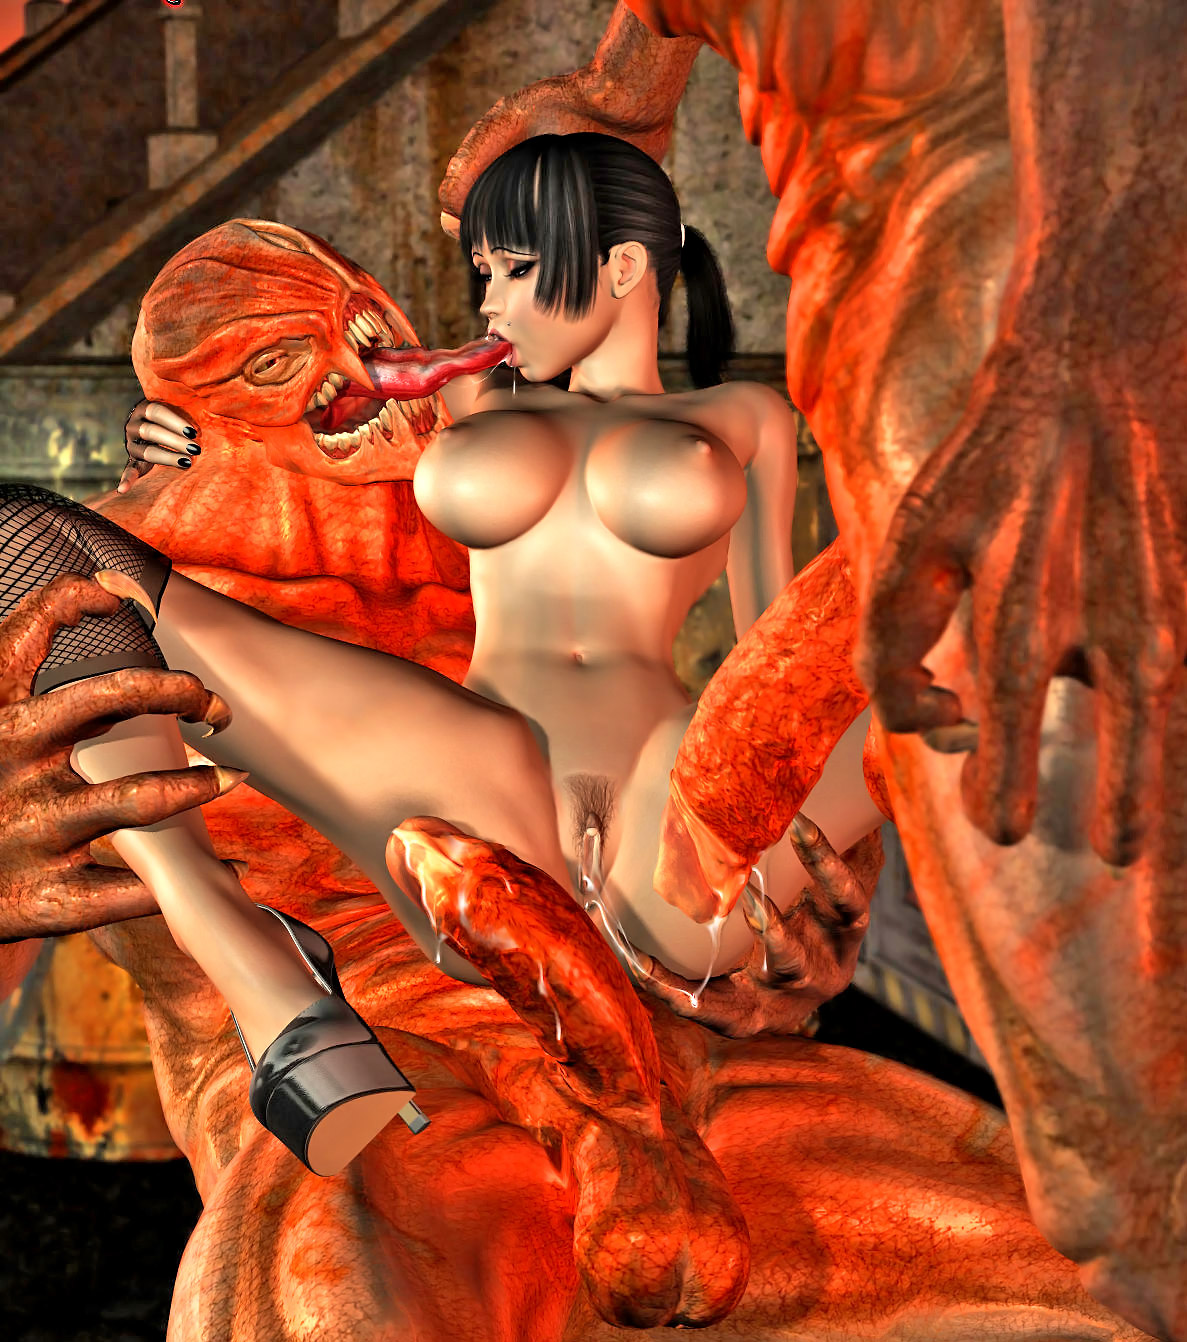 Naked demon girl erotica photo